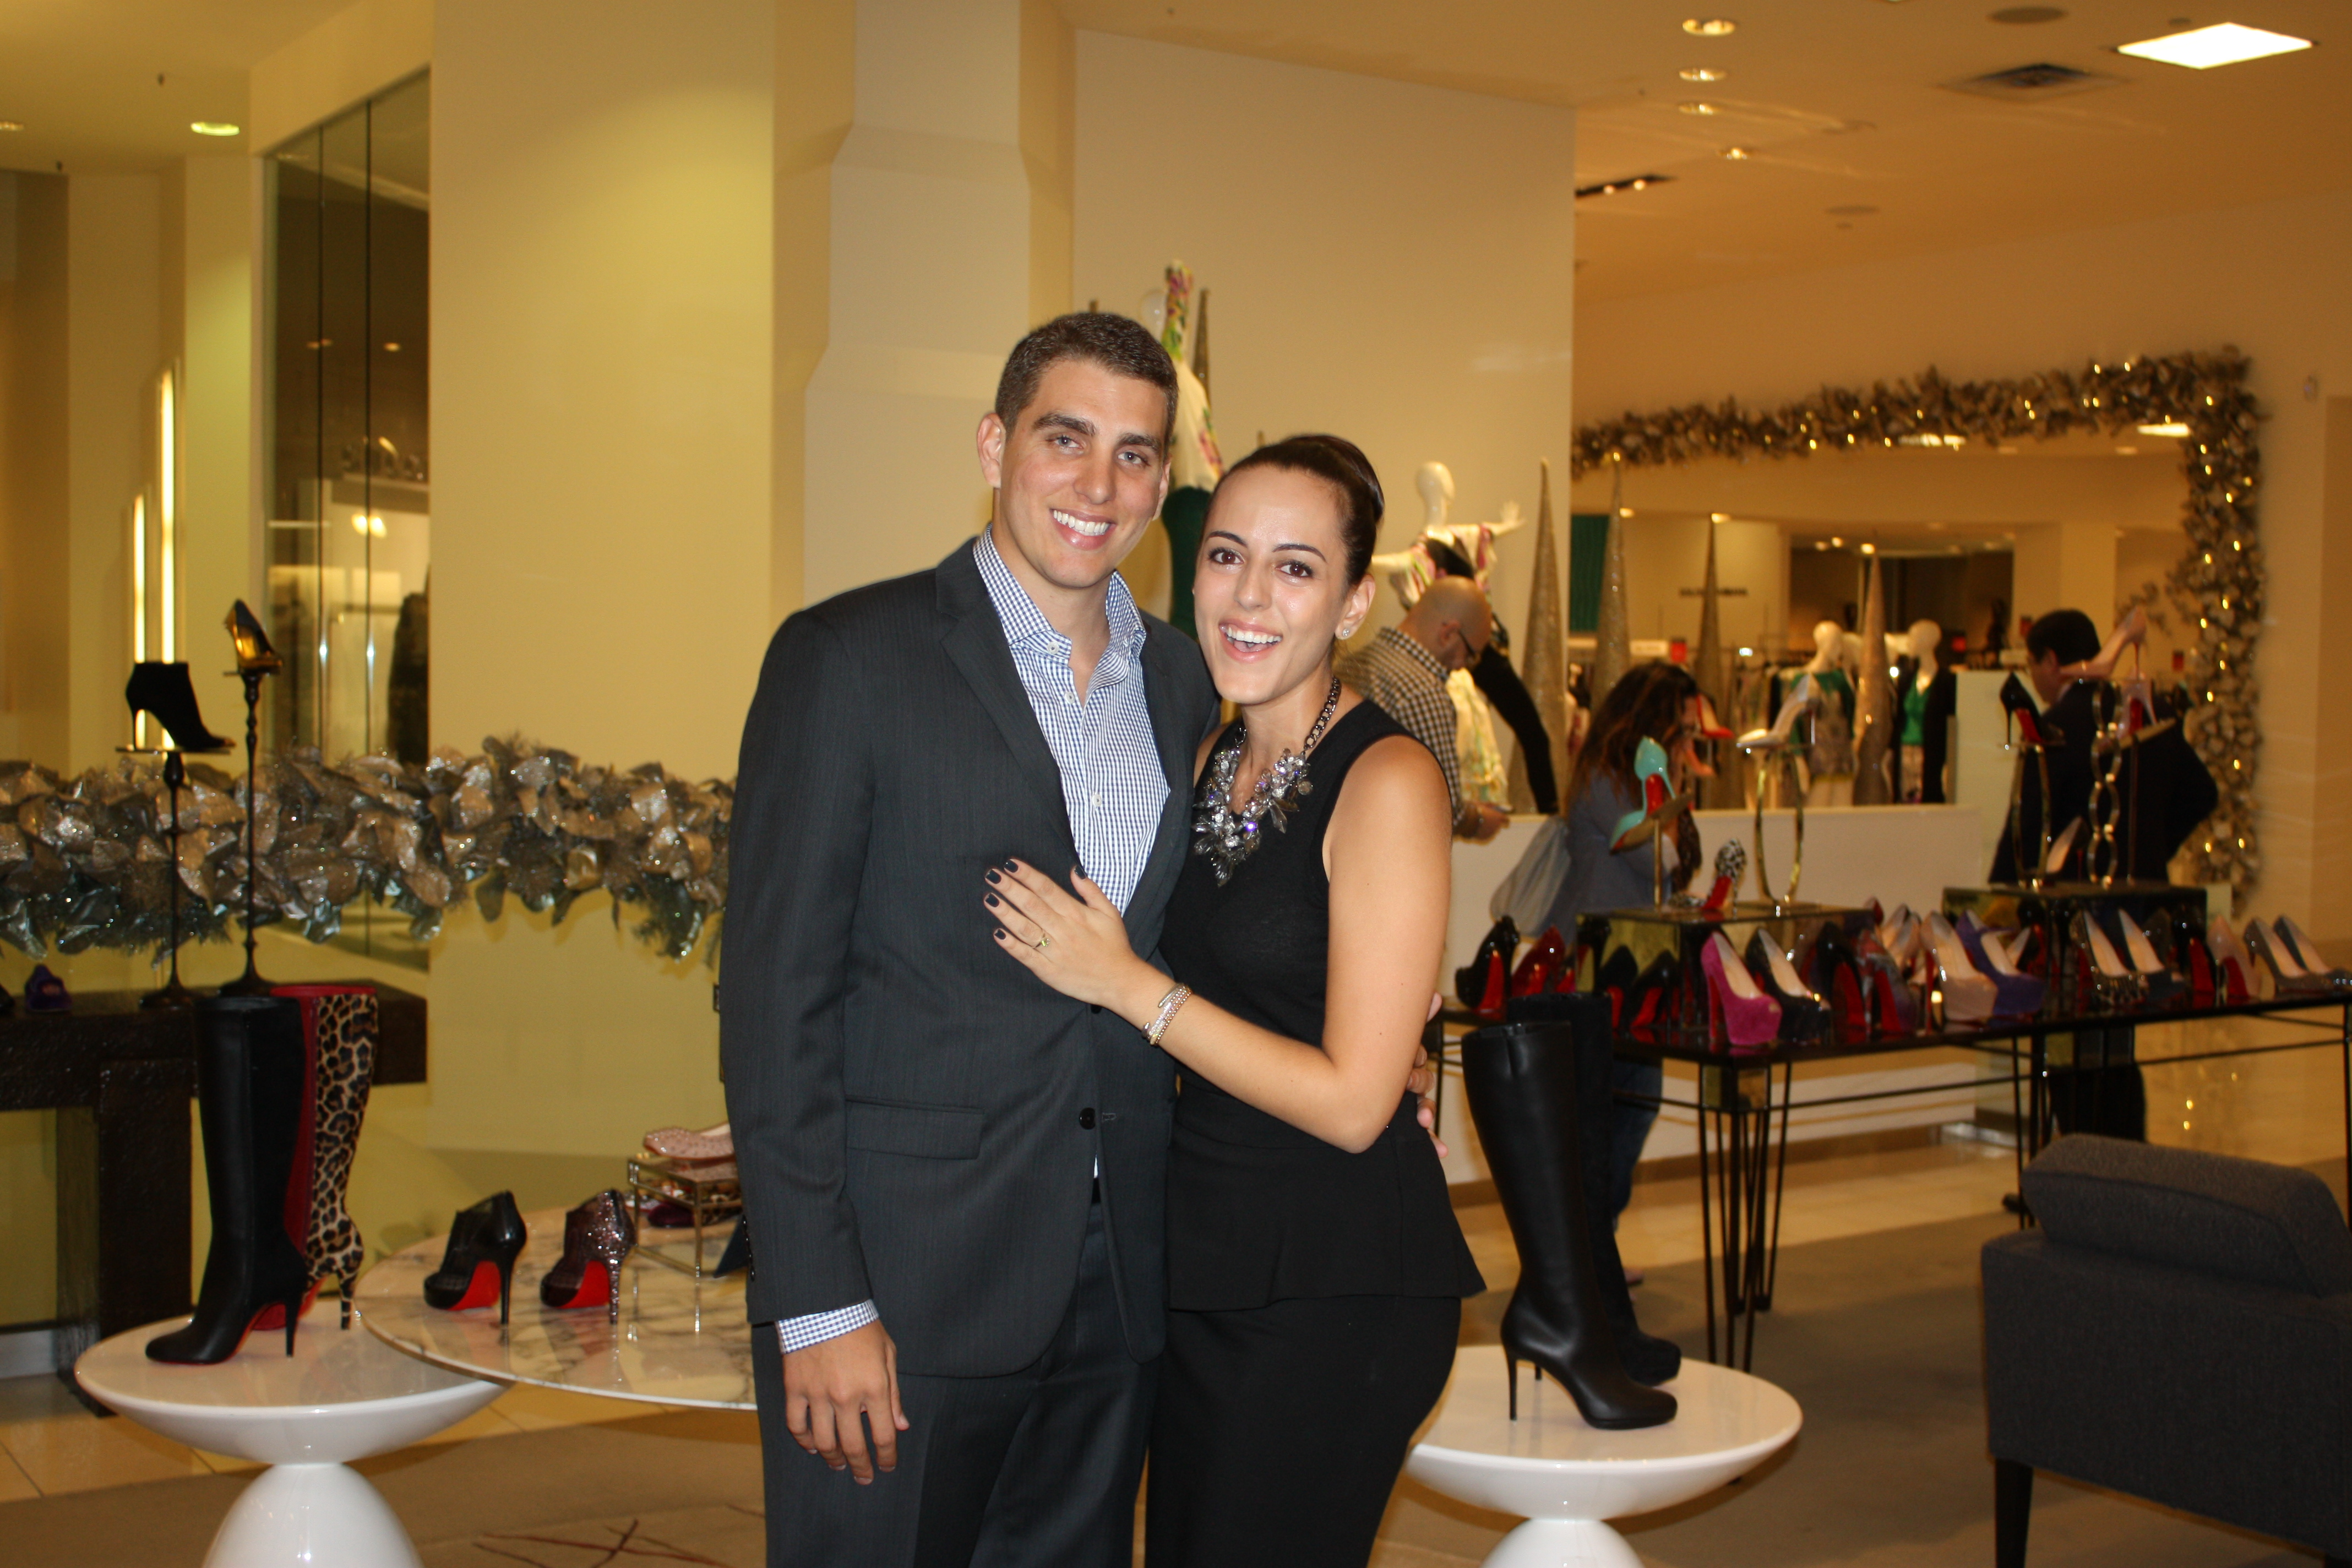 Image 7 of Erika and Alex | Saks Fifth Avenue Proposal